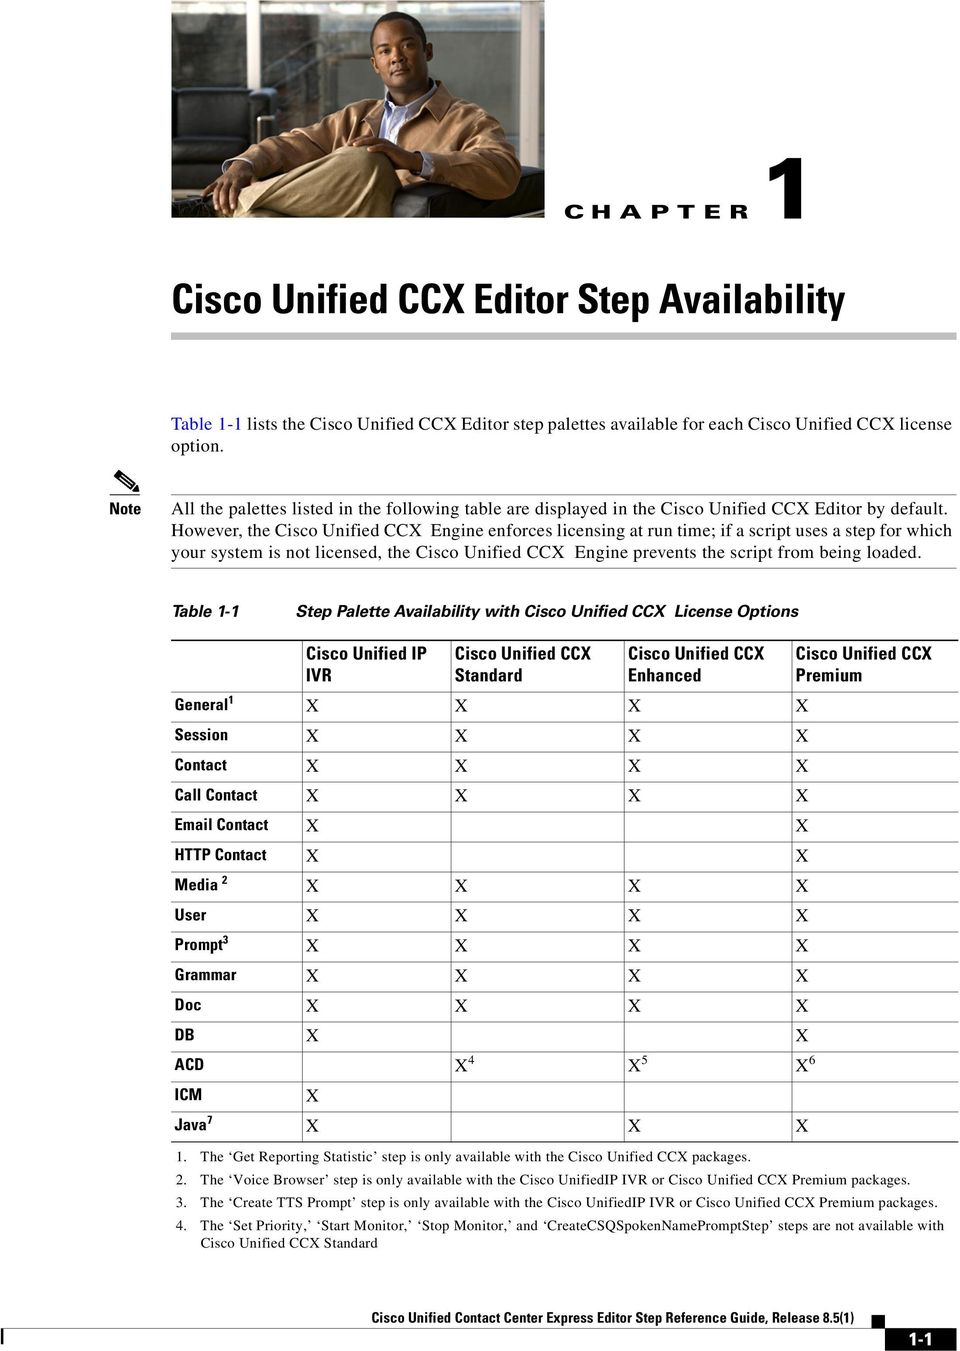 Cisco Unified Contact Center Express Editor Step Reference Guide